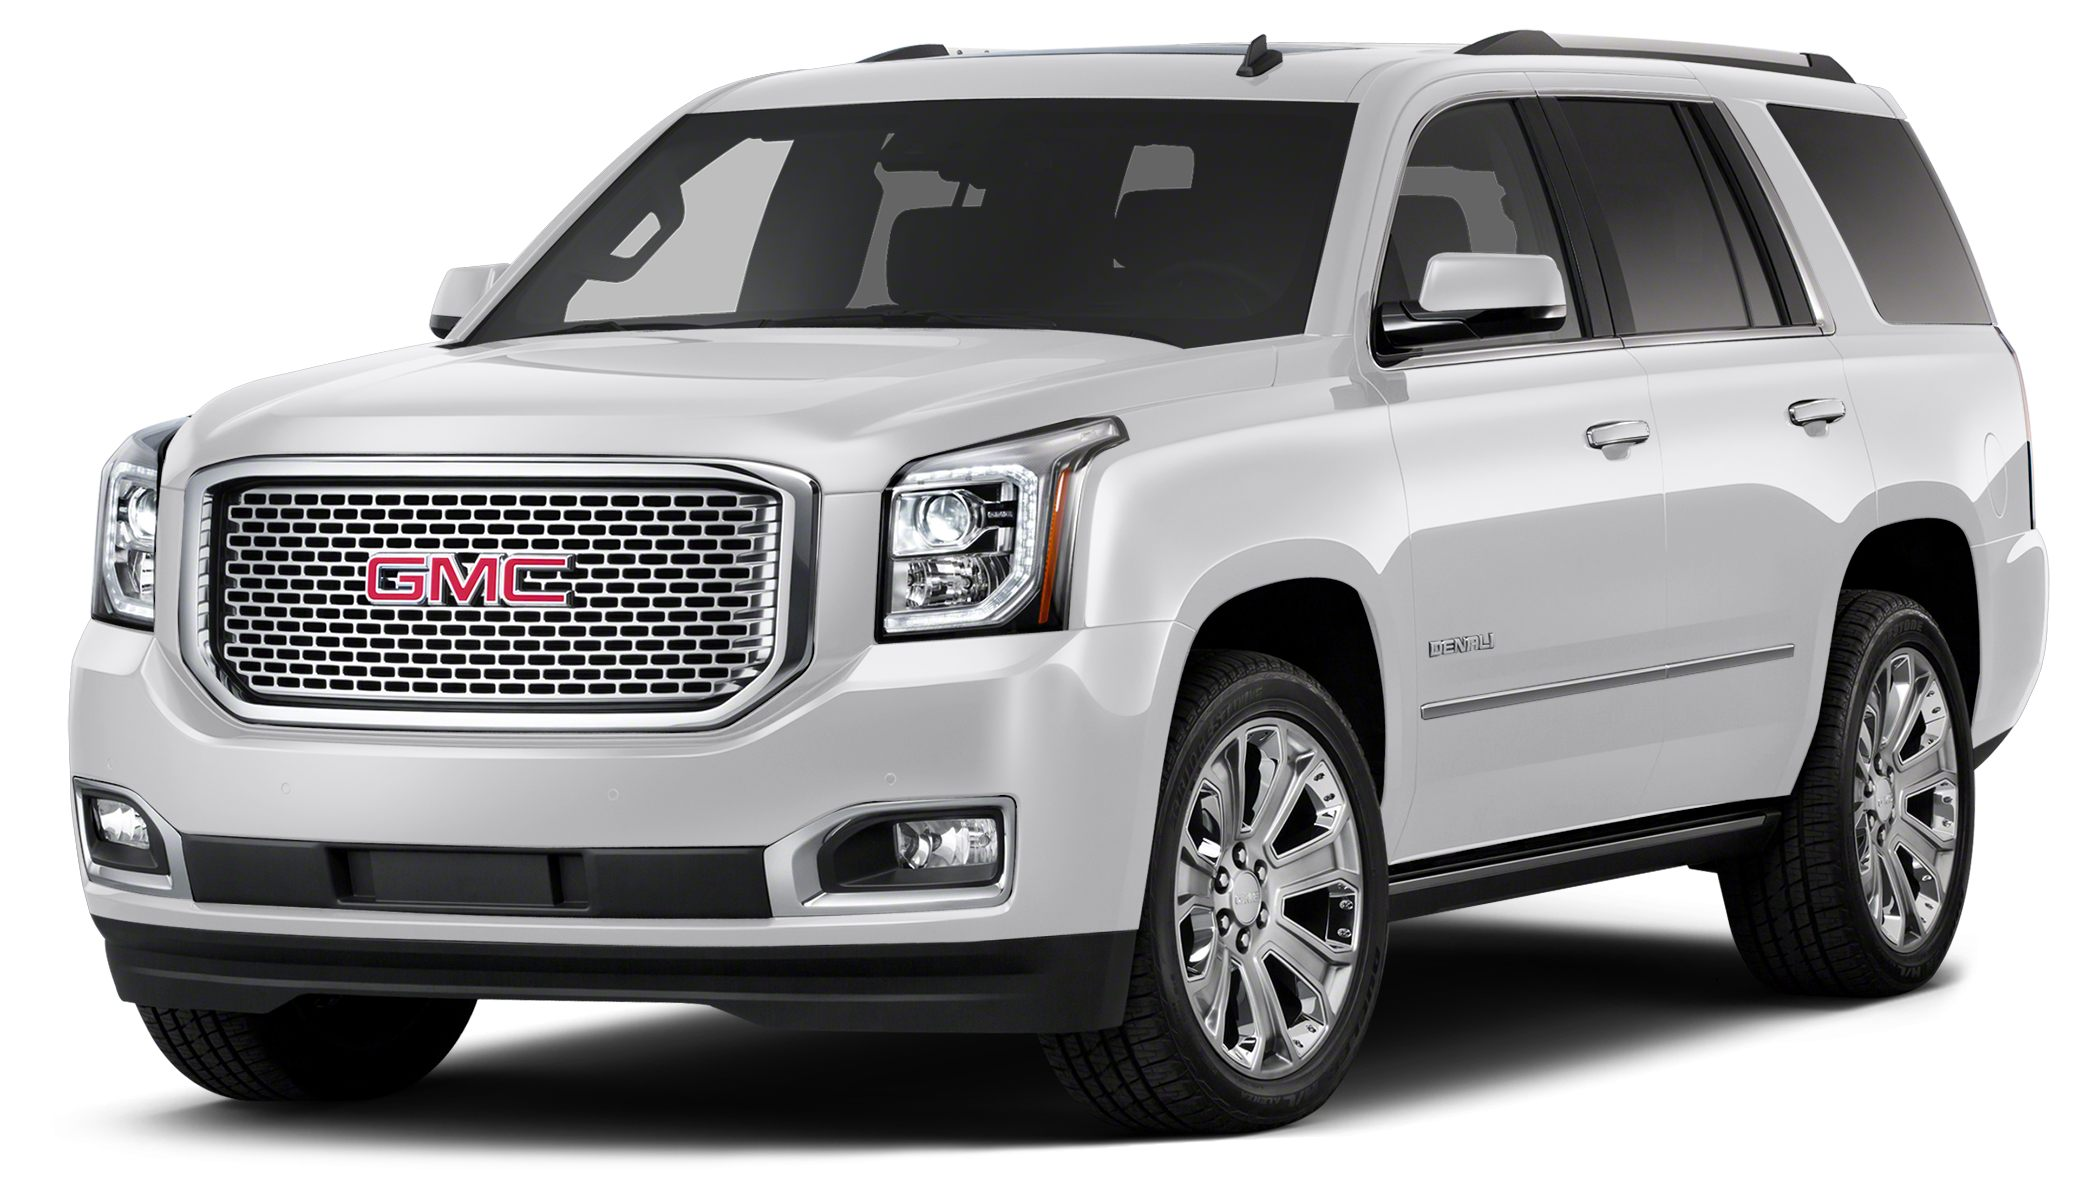 gmc yukon denali for sale used gmc yukon denali cars for sale. Black Bedroom Furniture Sets. Home Design Ideas